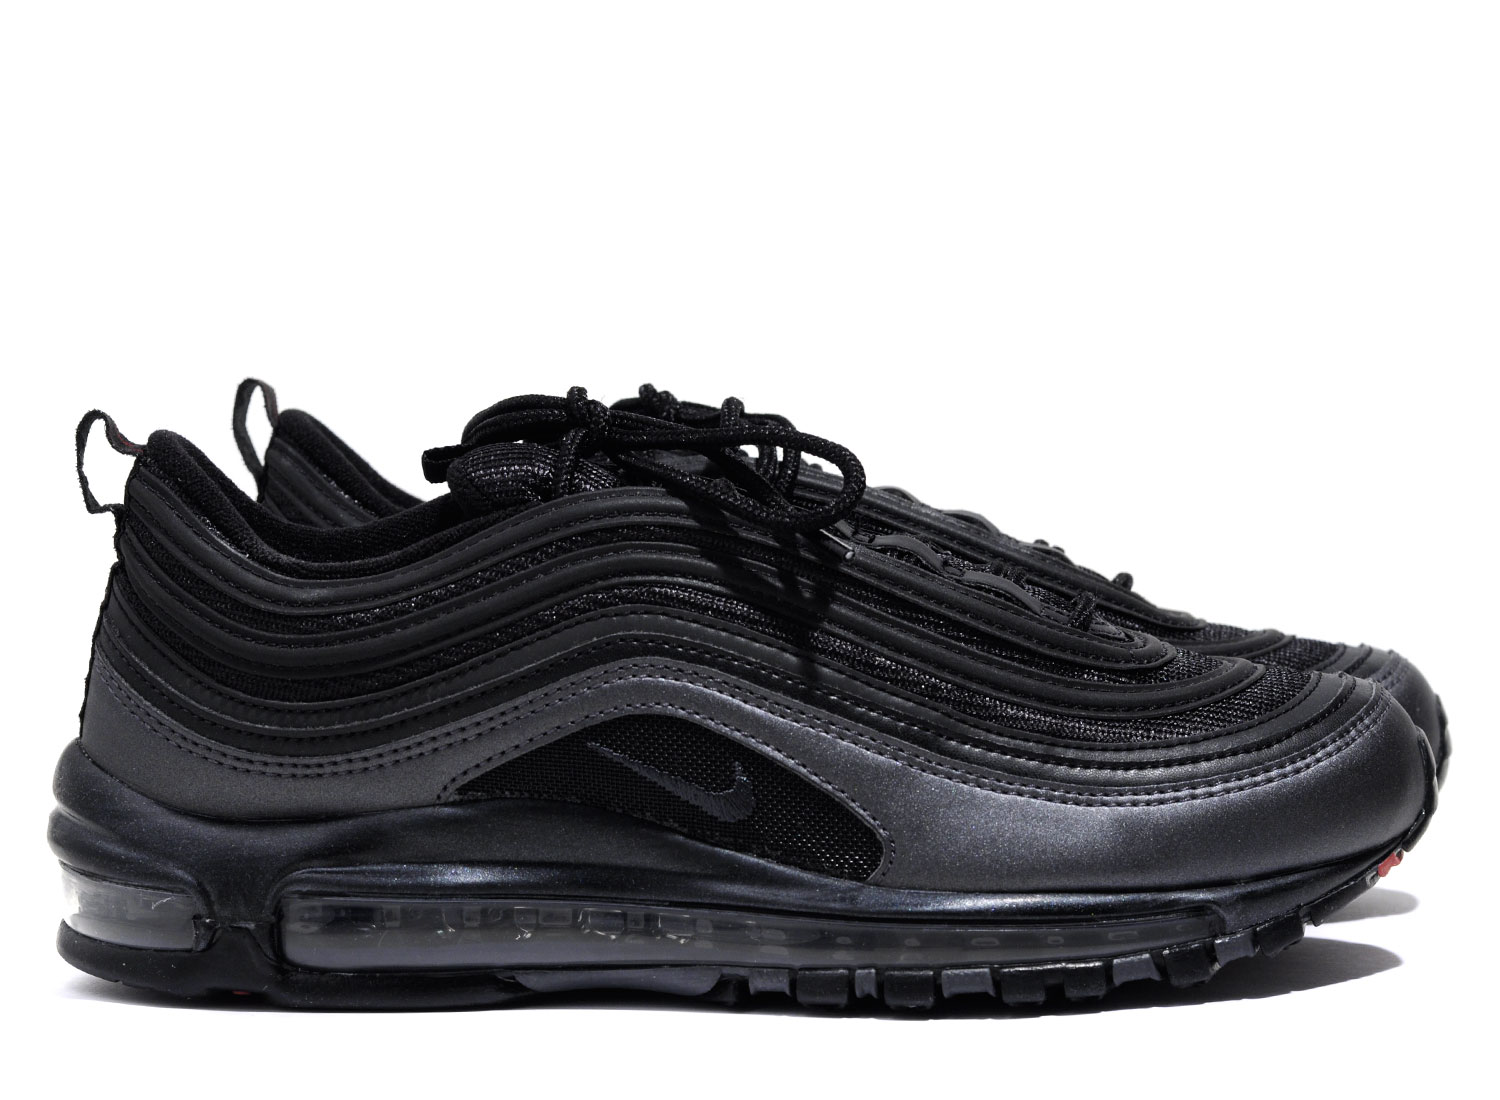 huge selection of 56ee6 28ece nike-air-max-97-metallic-hematite-921826-005-1.jpg